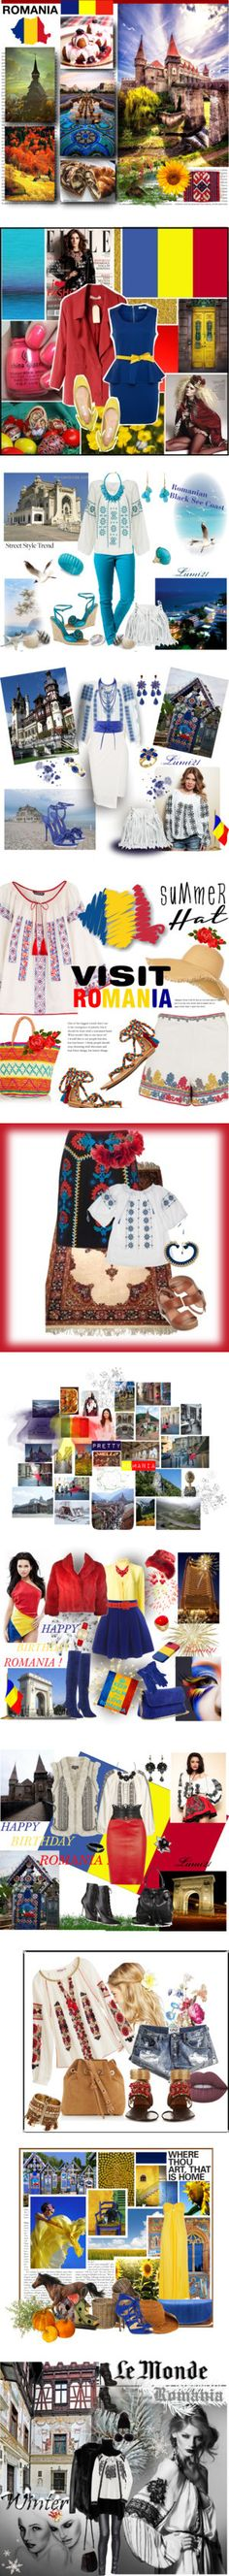 ROMANIA - my country! by kumi-chan on Polyvore featuring art, country, China Glaze, Glamorous, Cacharel, Rip Curl, Star Mela, Kate Spade, Ippolita and Ten Thousand Things